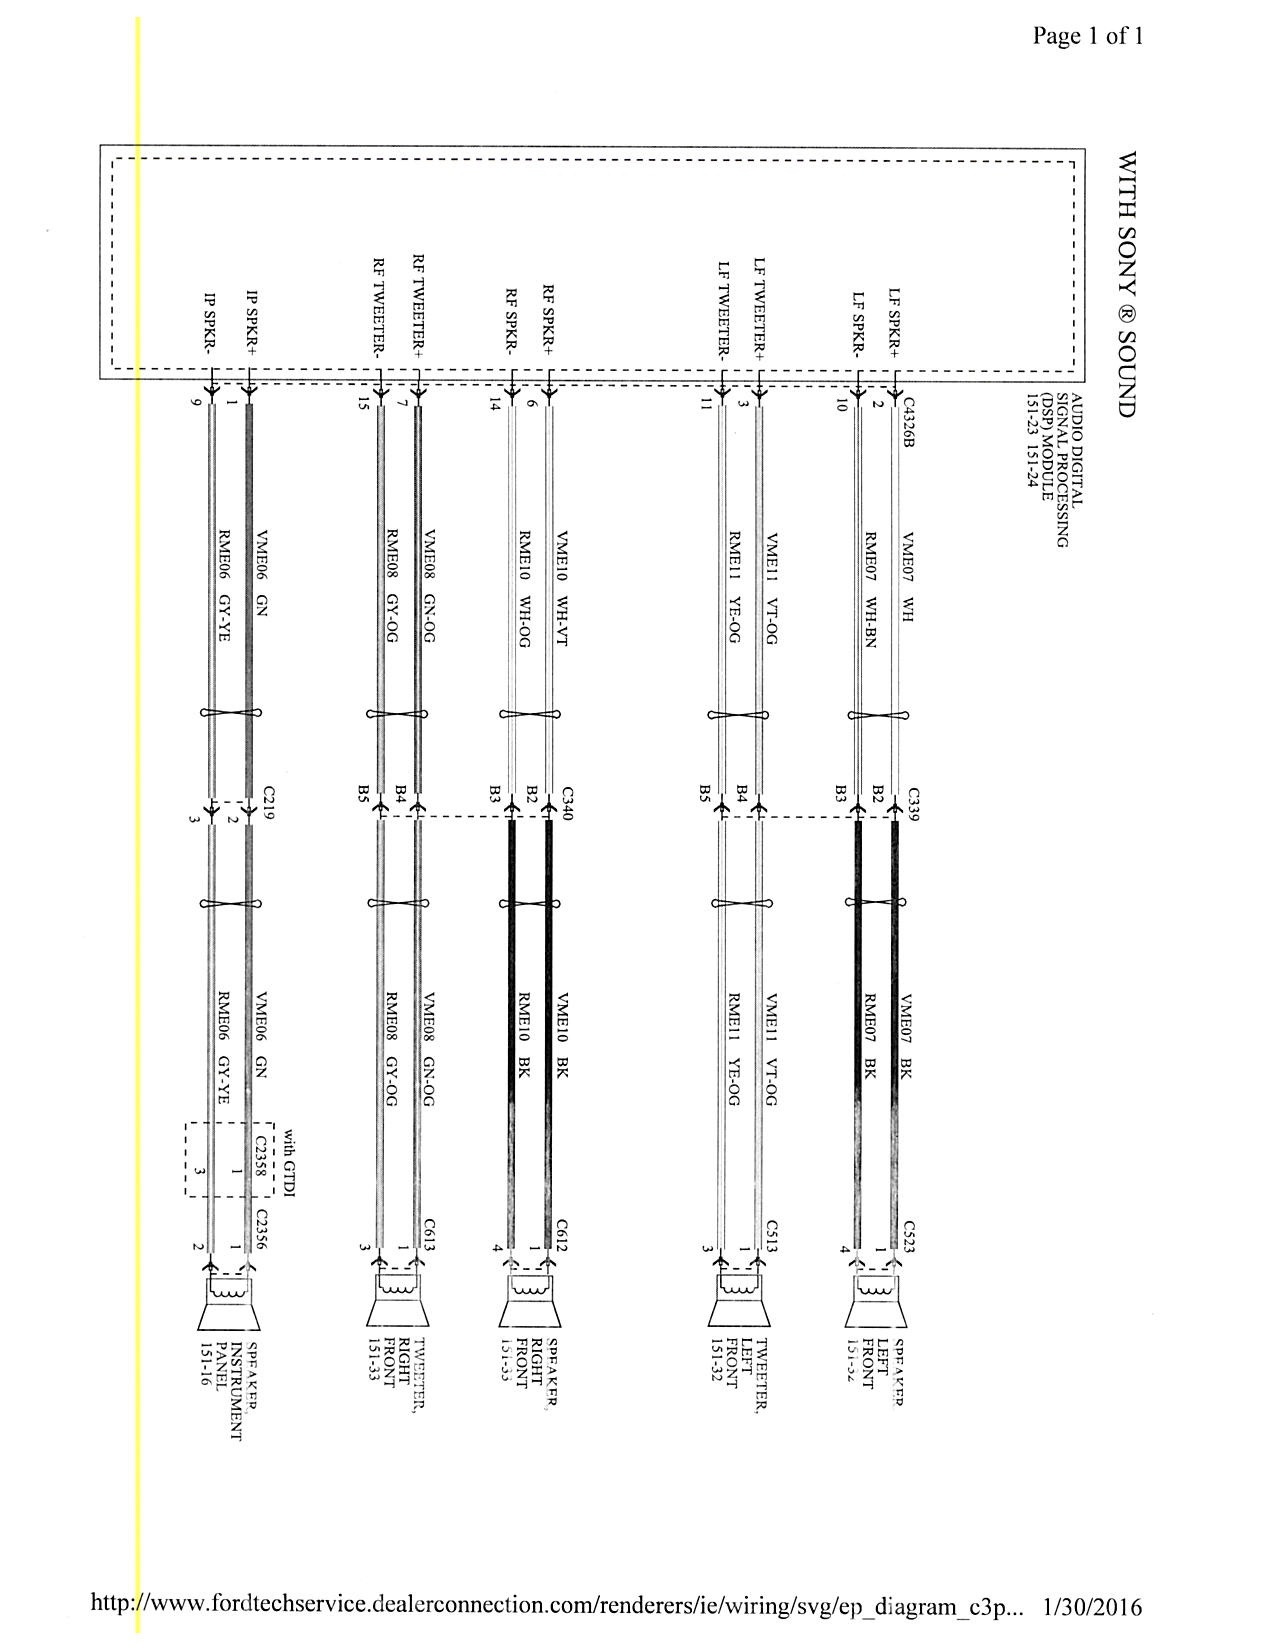 2003 ford focus radio wiring diagram Download-2003 Ford Focus Radio Wiring Diagram 16-a